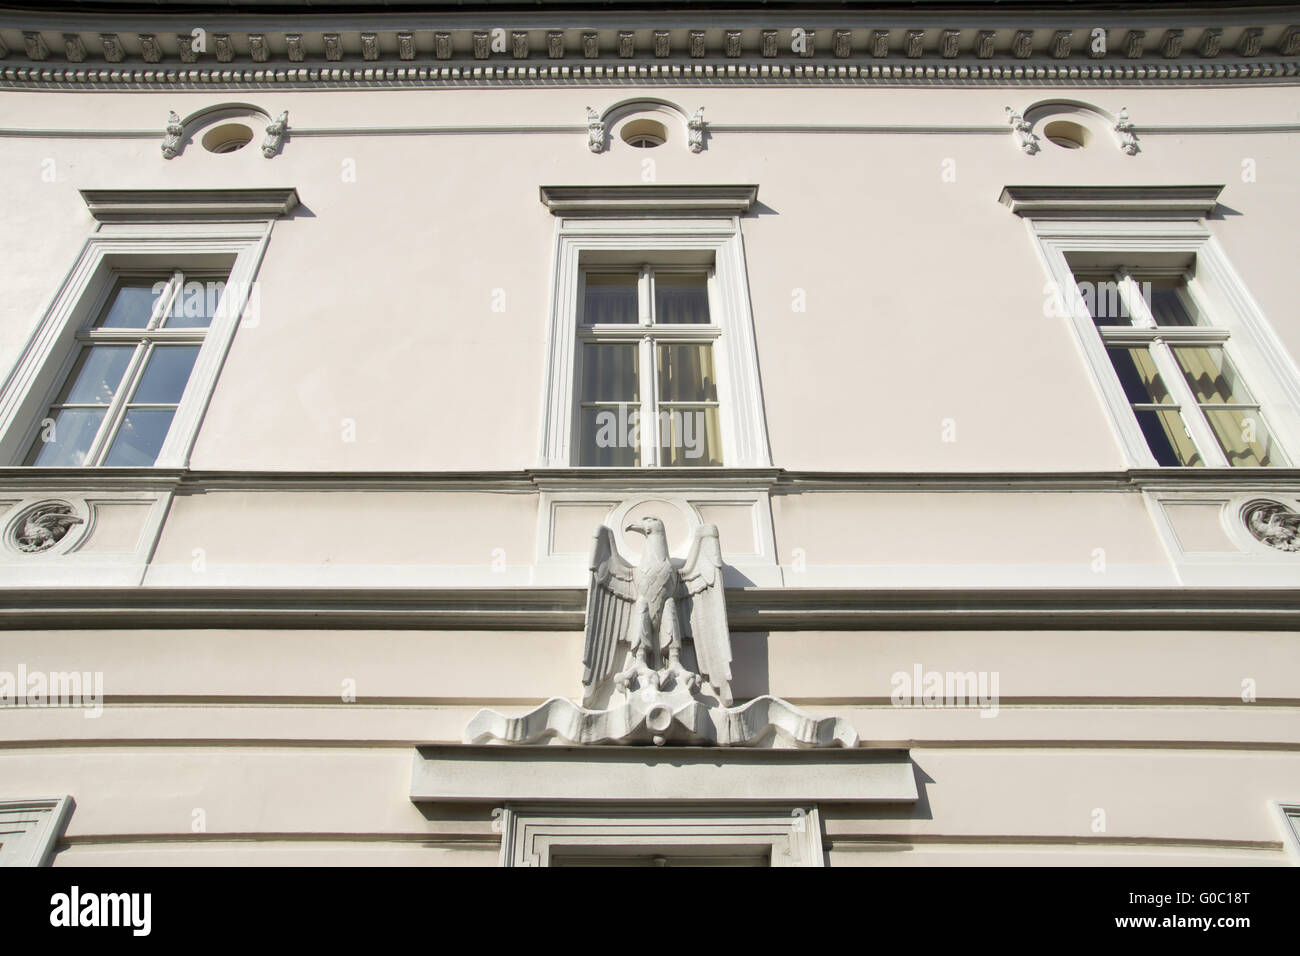 Facade of the old postoffice in Unna, Germany - Stock Image